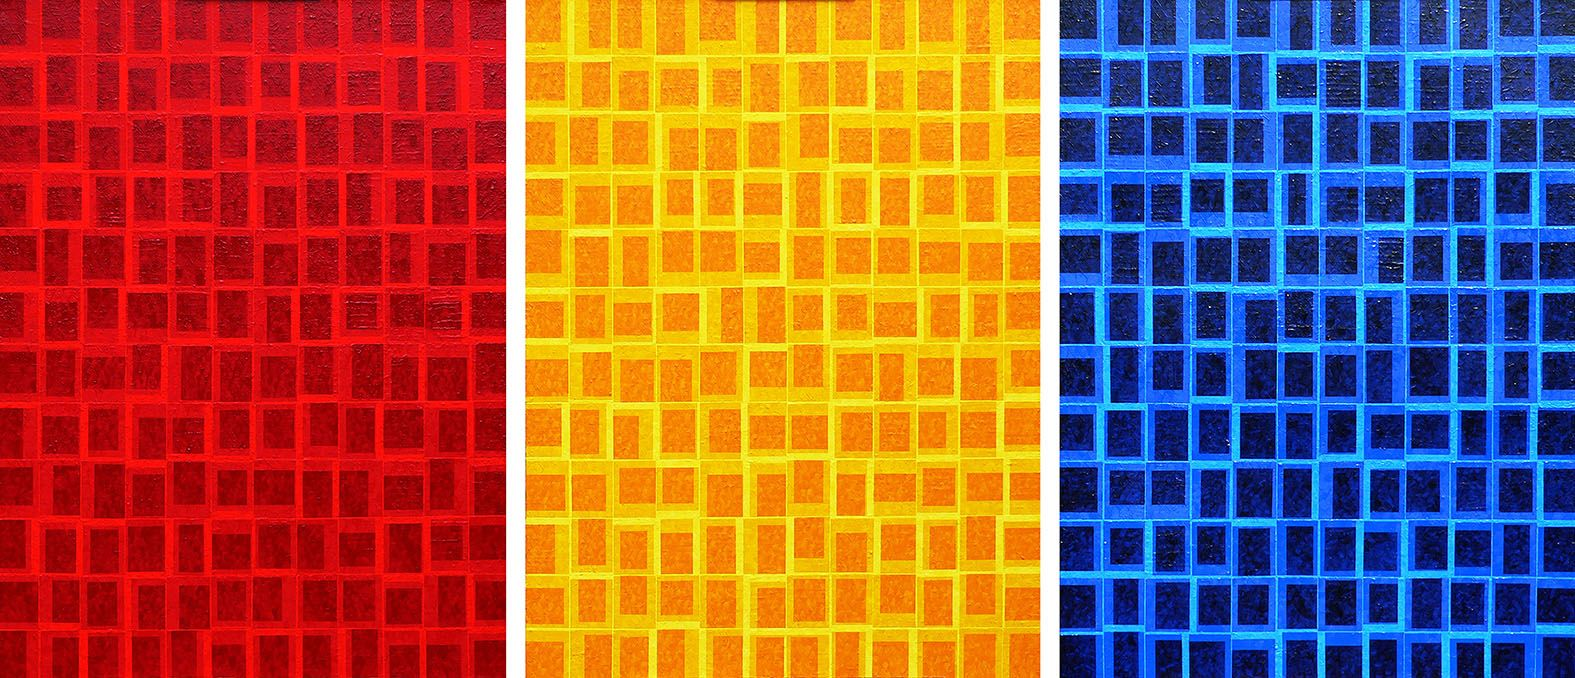 Primary One, oil on canvas, 121 x 175cm, 2014